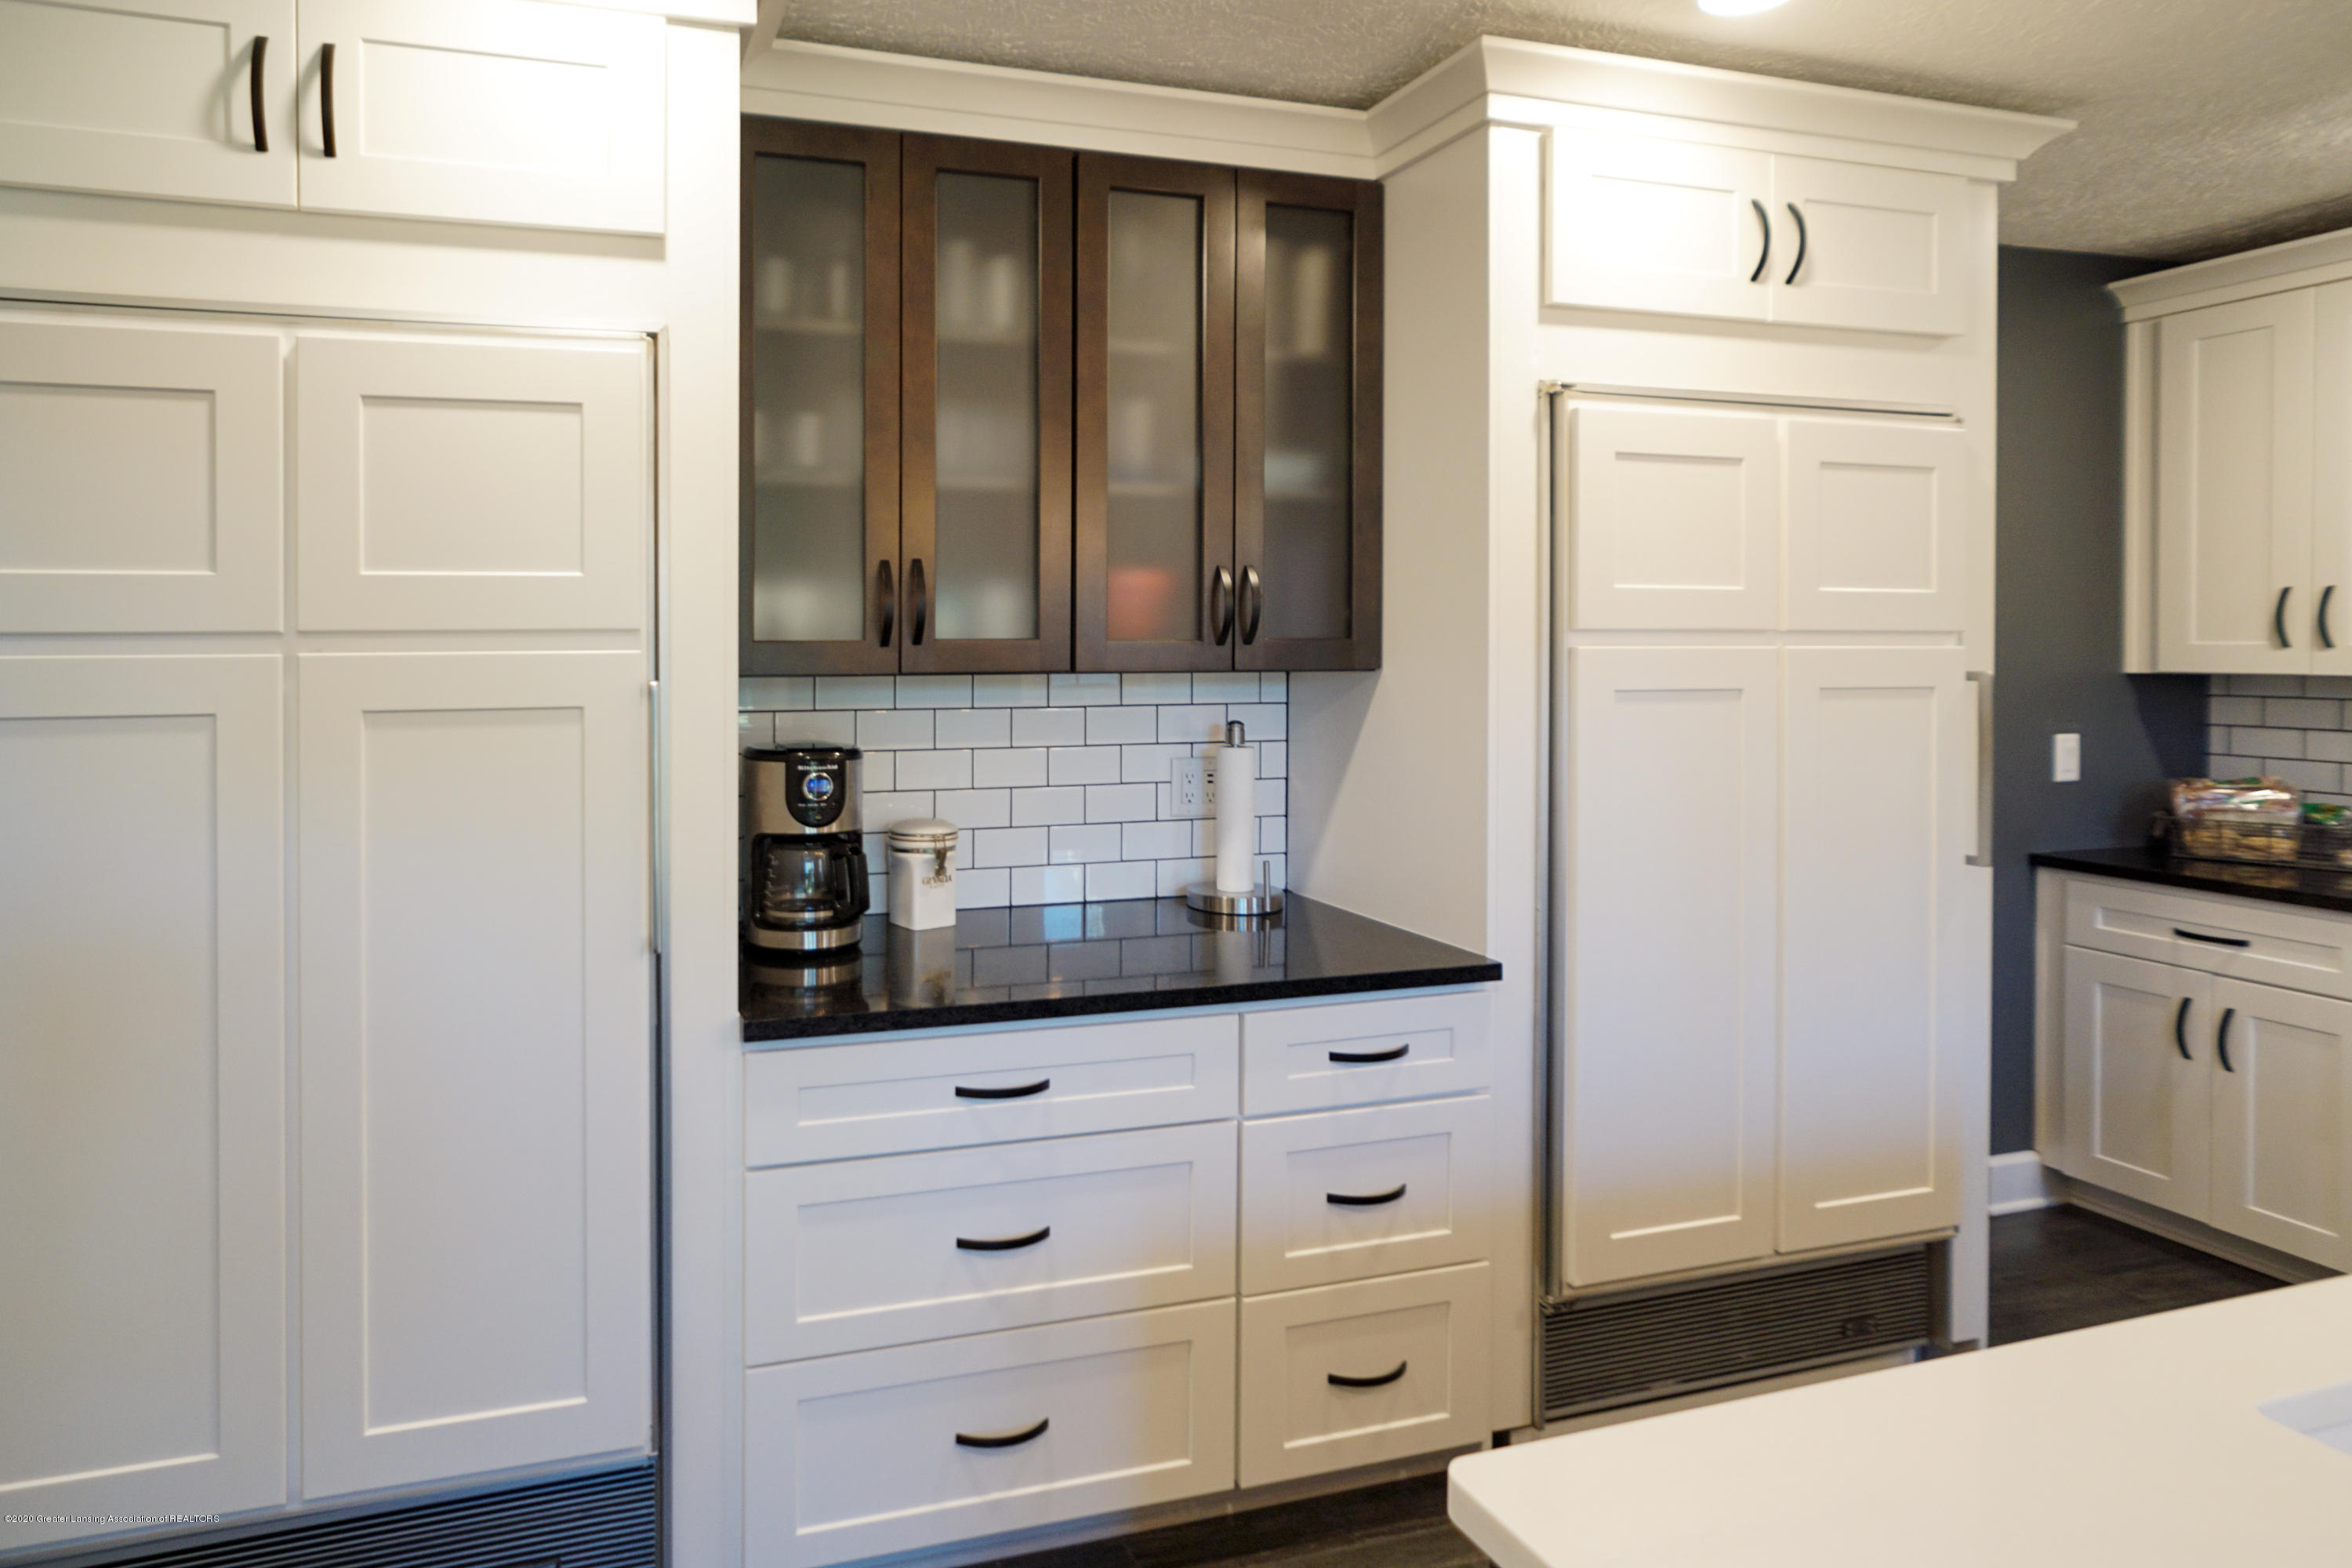 614 Whitehills Dr - Display cabinetry - 15